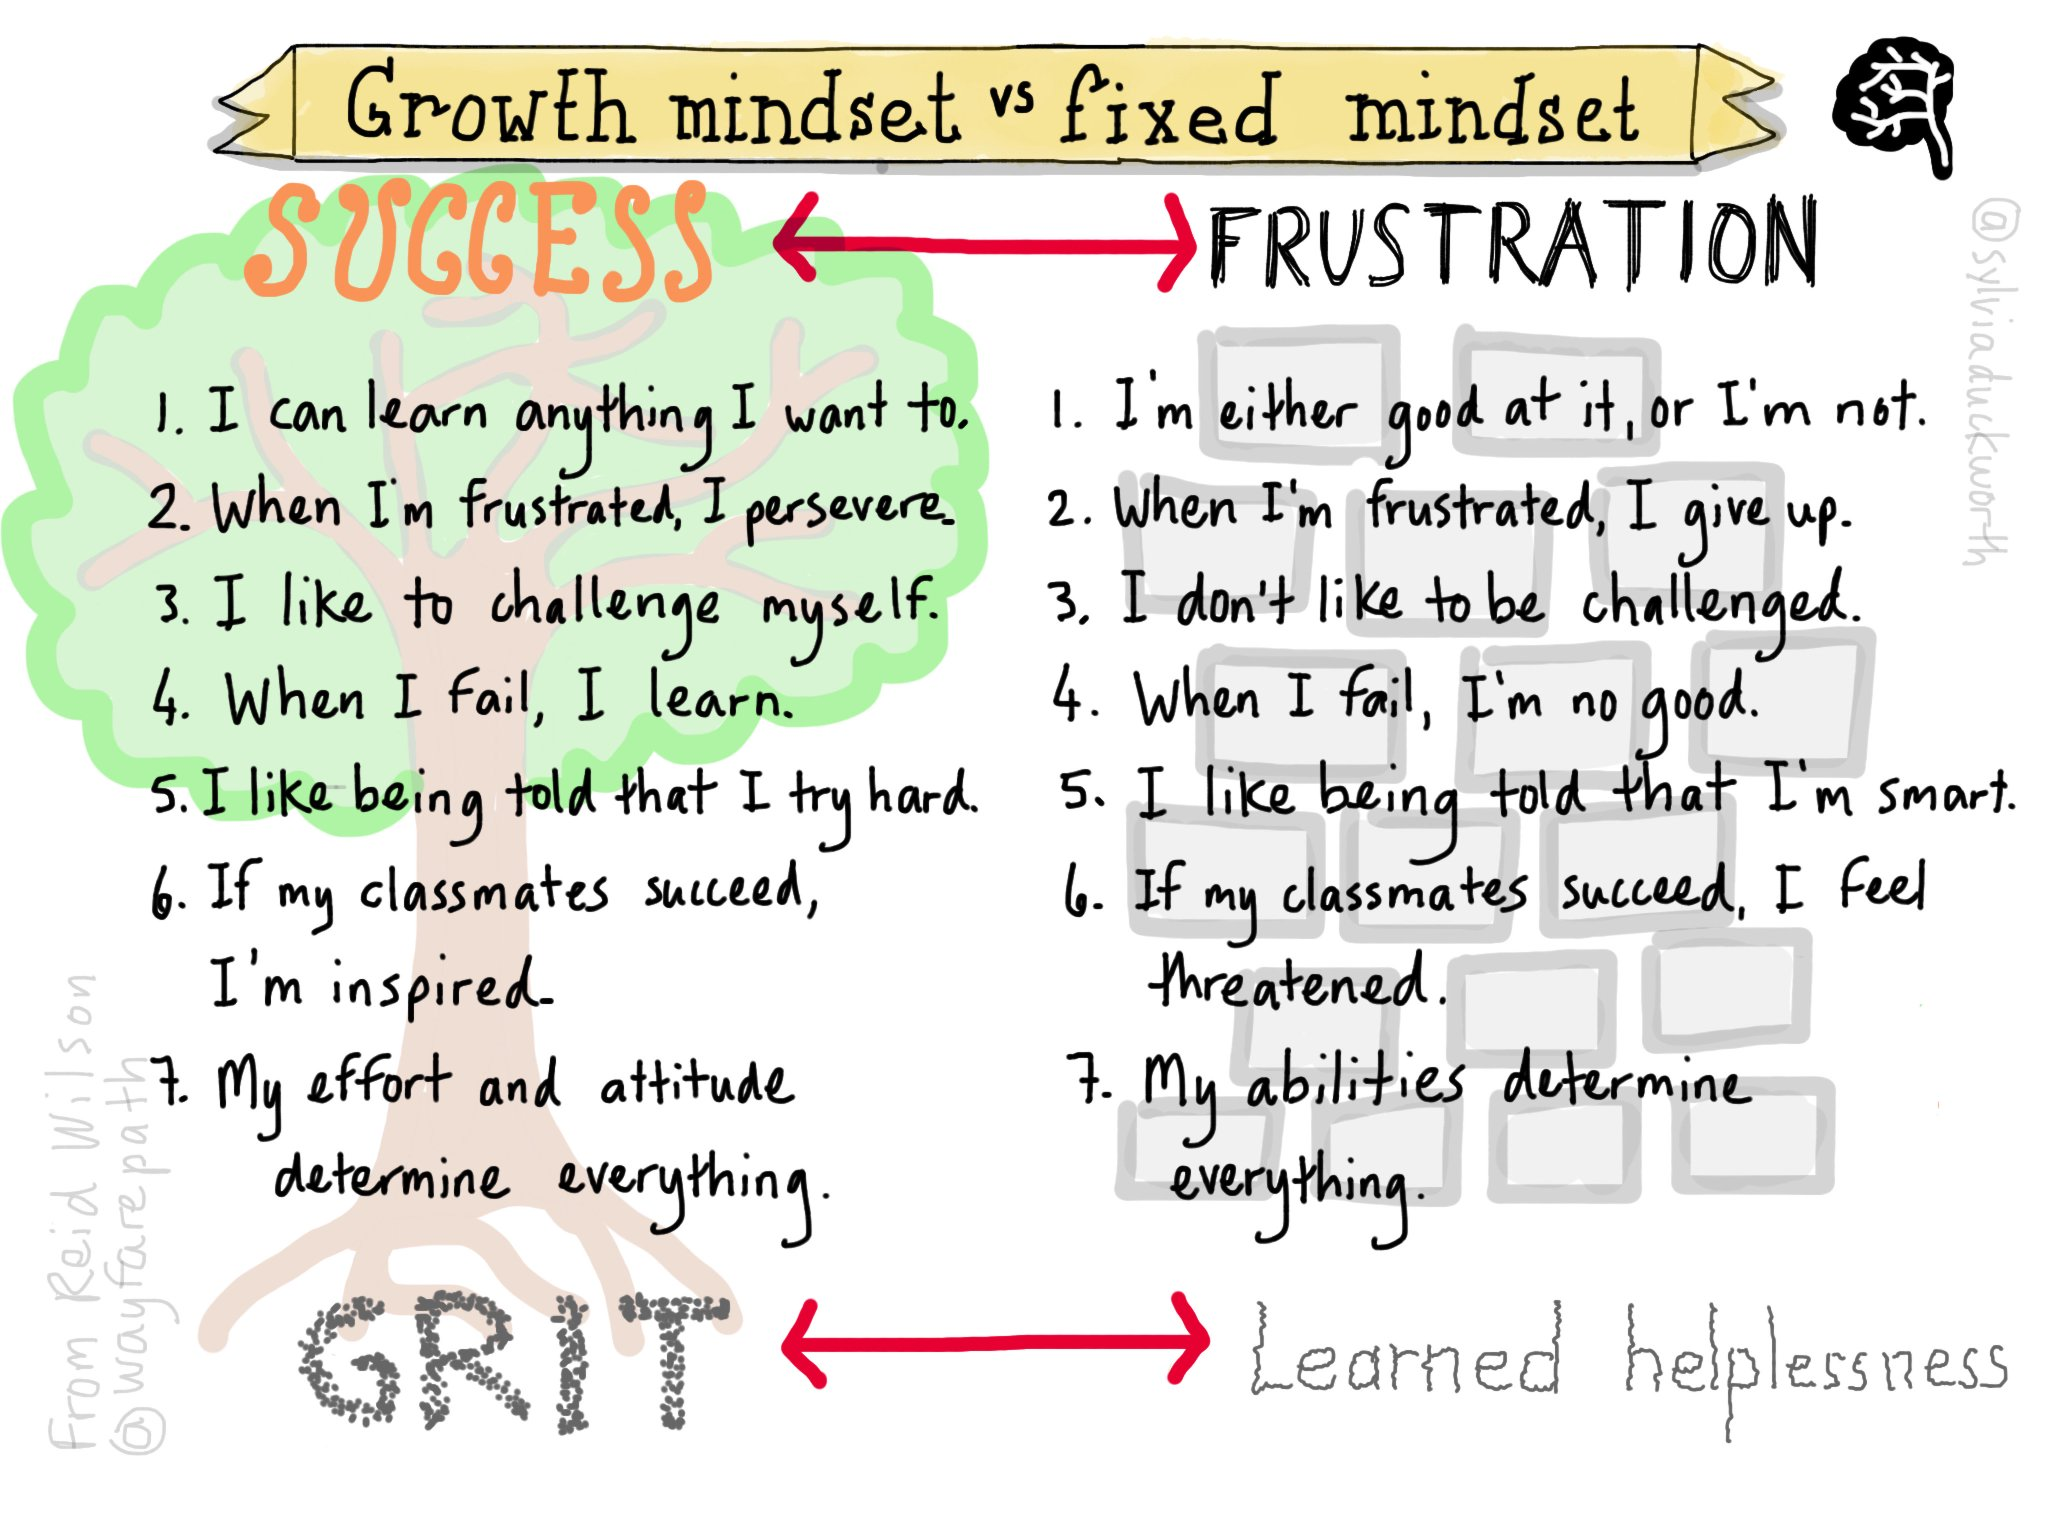 A good reminder of mindsets that lead to continual improvement #sketchnote by @sylviaduckworth @wayfaringpath #edchat #growthmindset https://t.co/iTVtZvDXYX